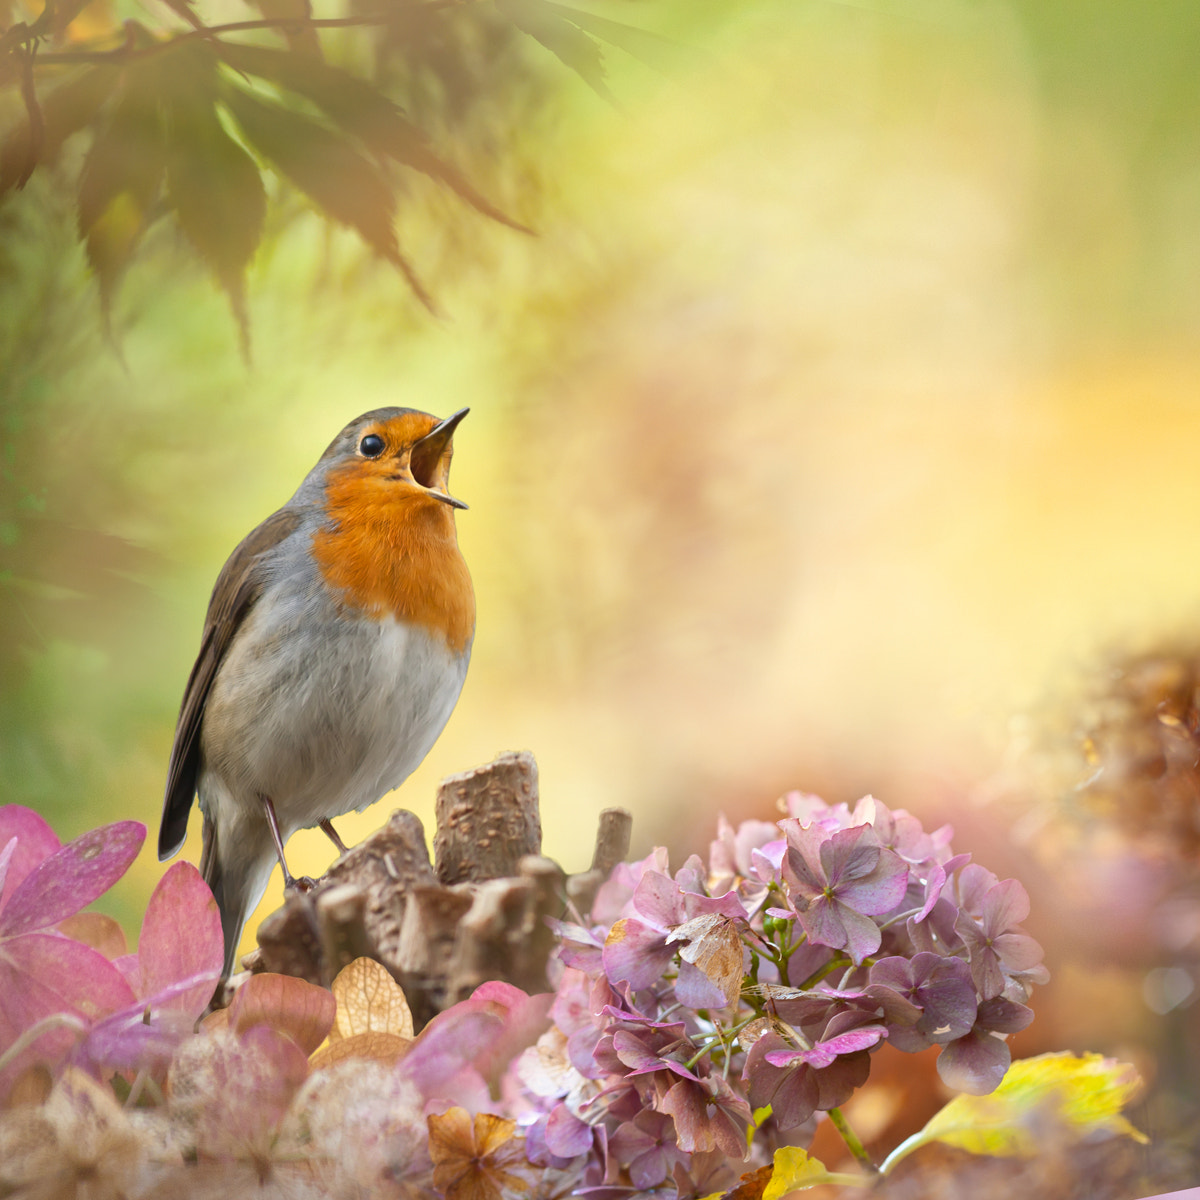 Photograph Robin fantasy by Teuni Stevense on 500px